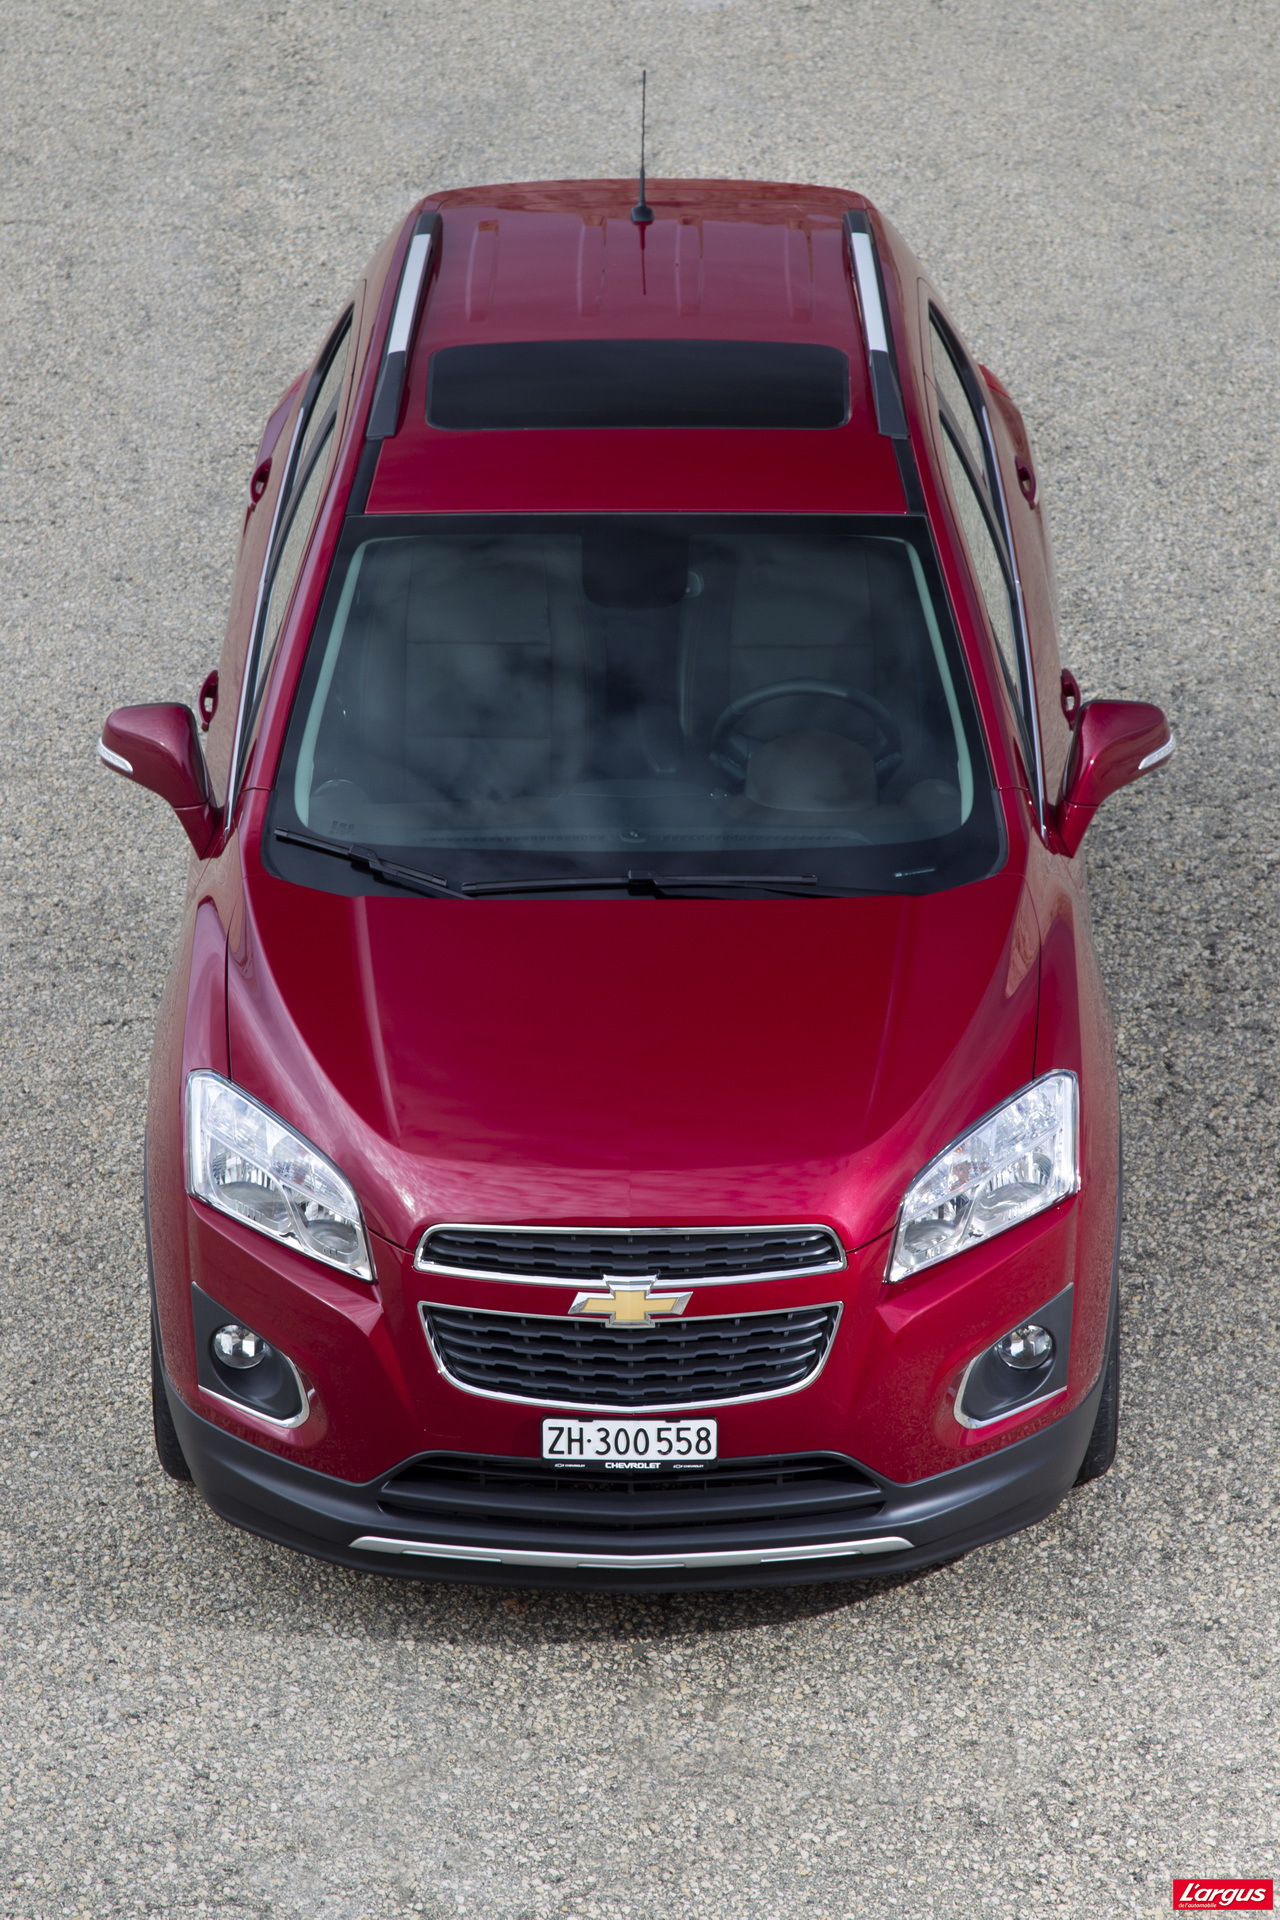 chevrolet trax au volant d 39 un truck am ricain ou presque l 39 argus. Black Bedroom Furniture Sets. Home Design Ideas